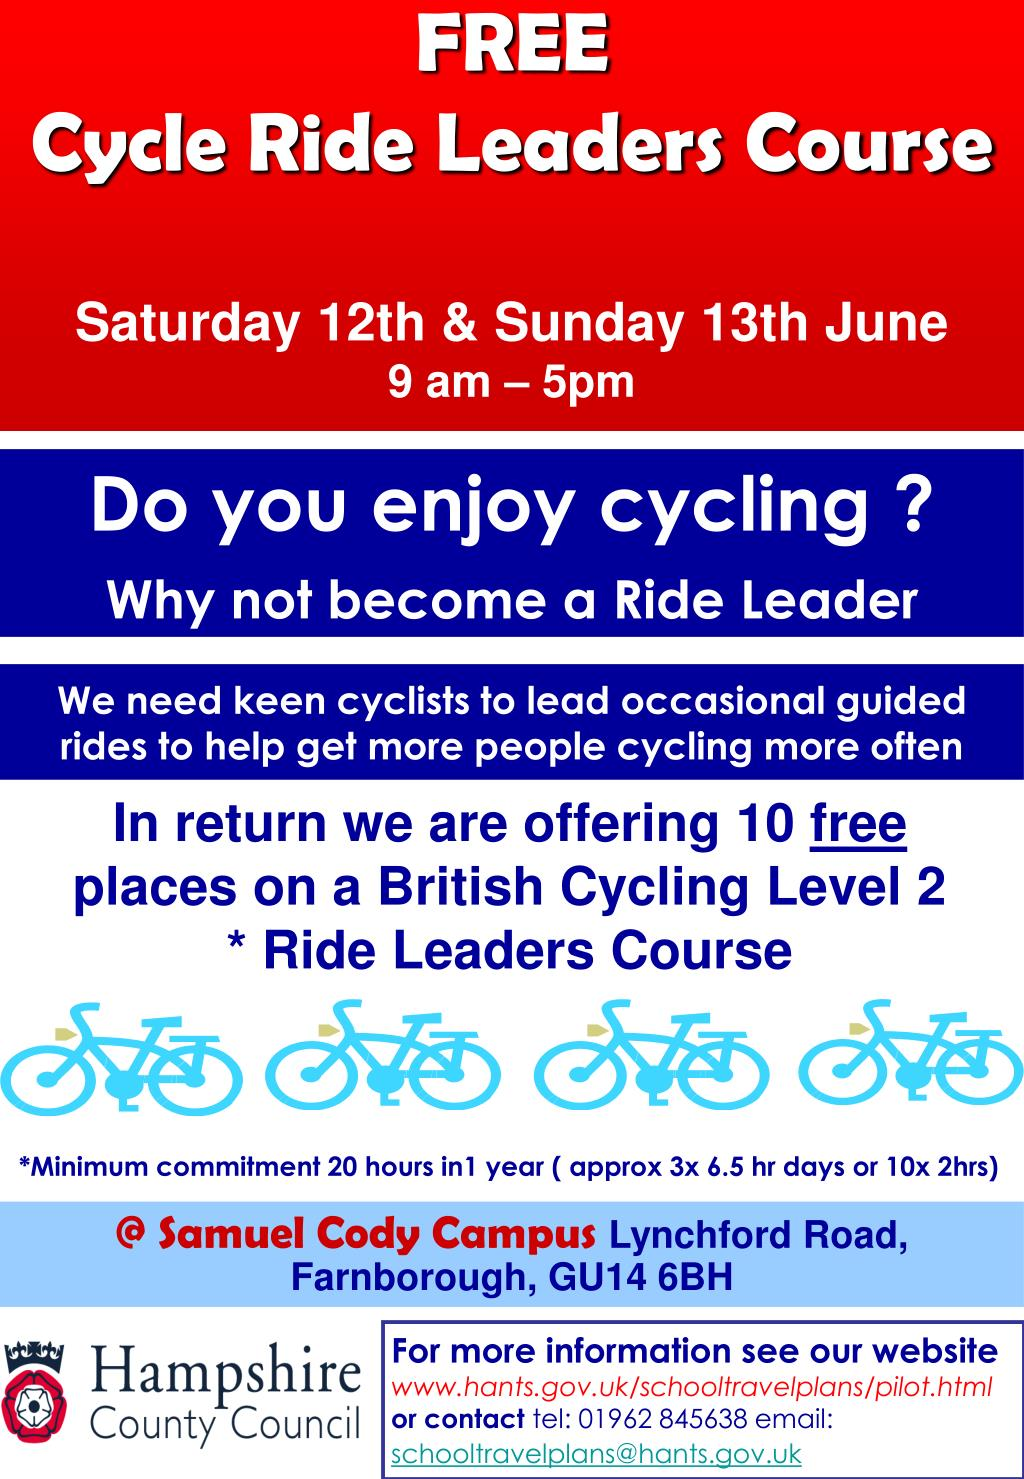 free cycle ride leaders course saturday 12th sunday 13th june 9 am 5pm l.